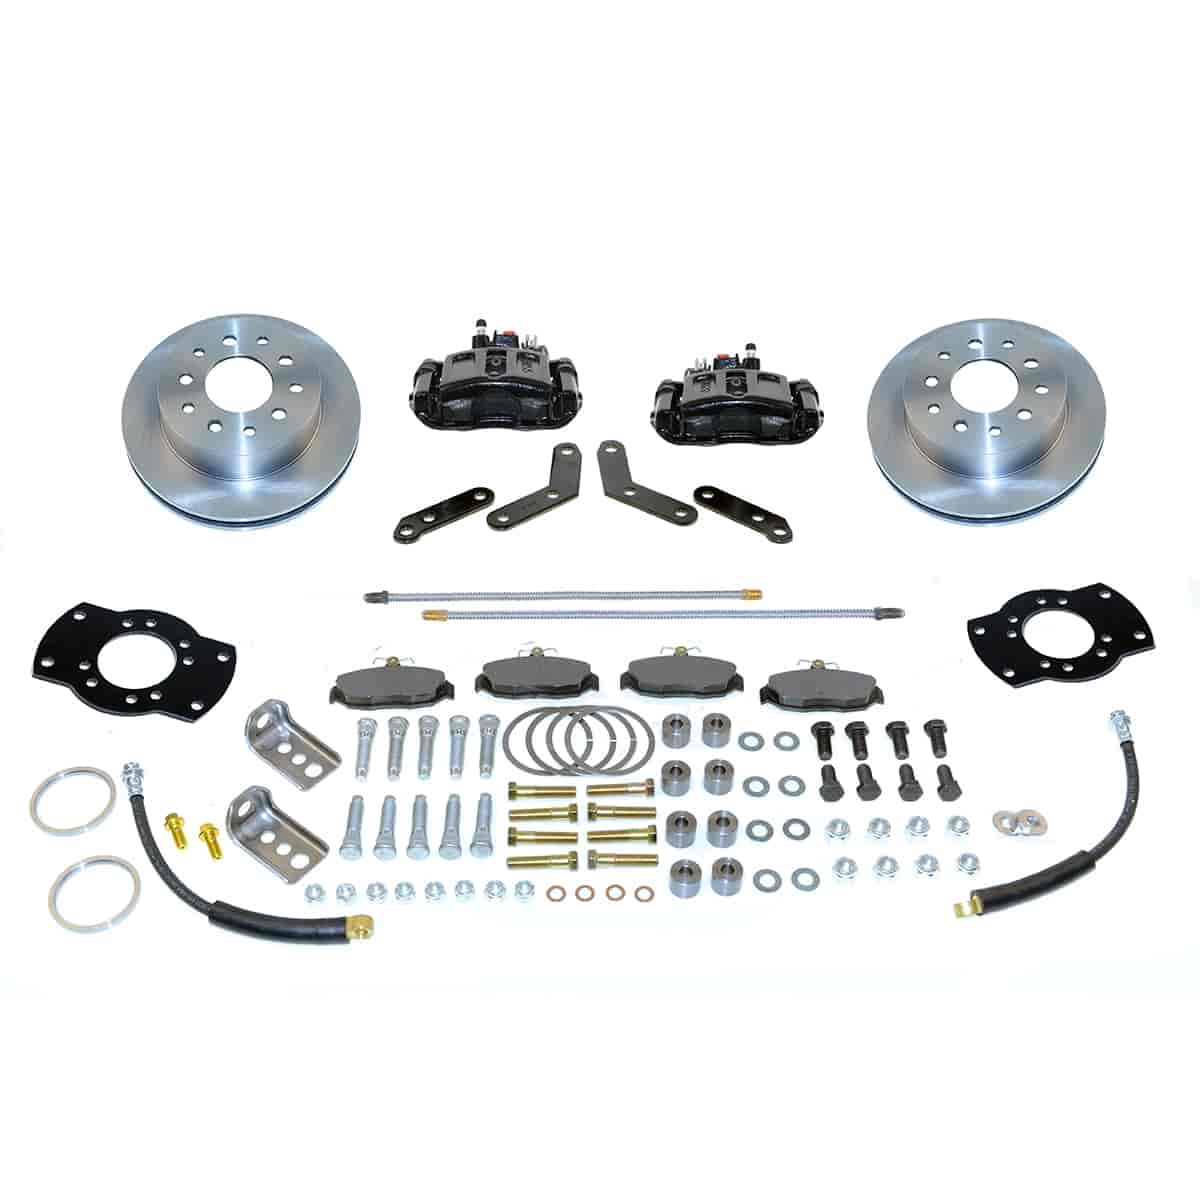 SSBC A117-1BK - Stainless Steel Brakes Single Piston Rear Drum to Disc Brake Conversion Kits